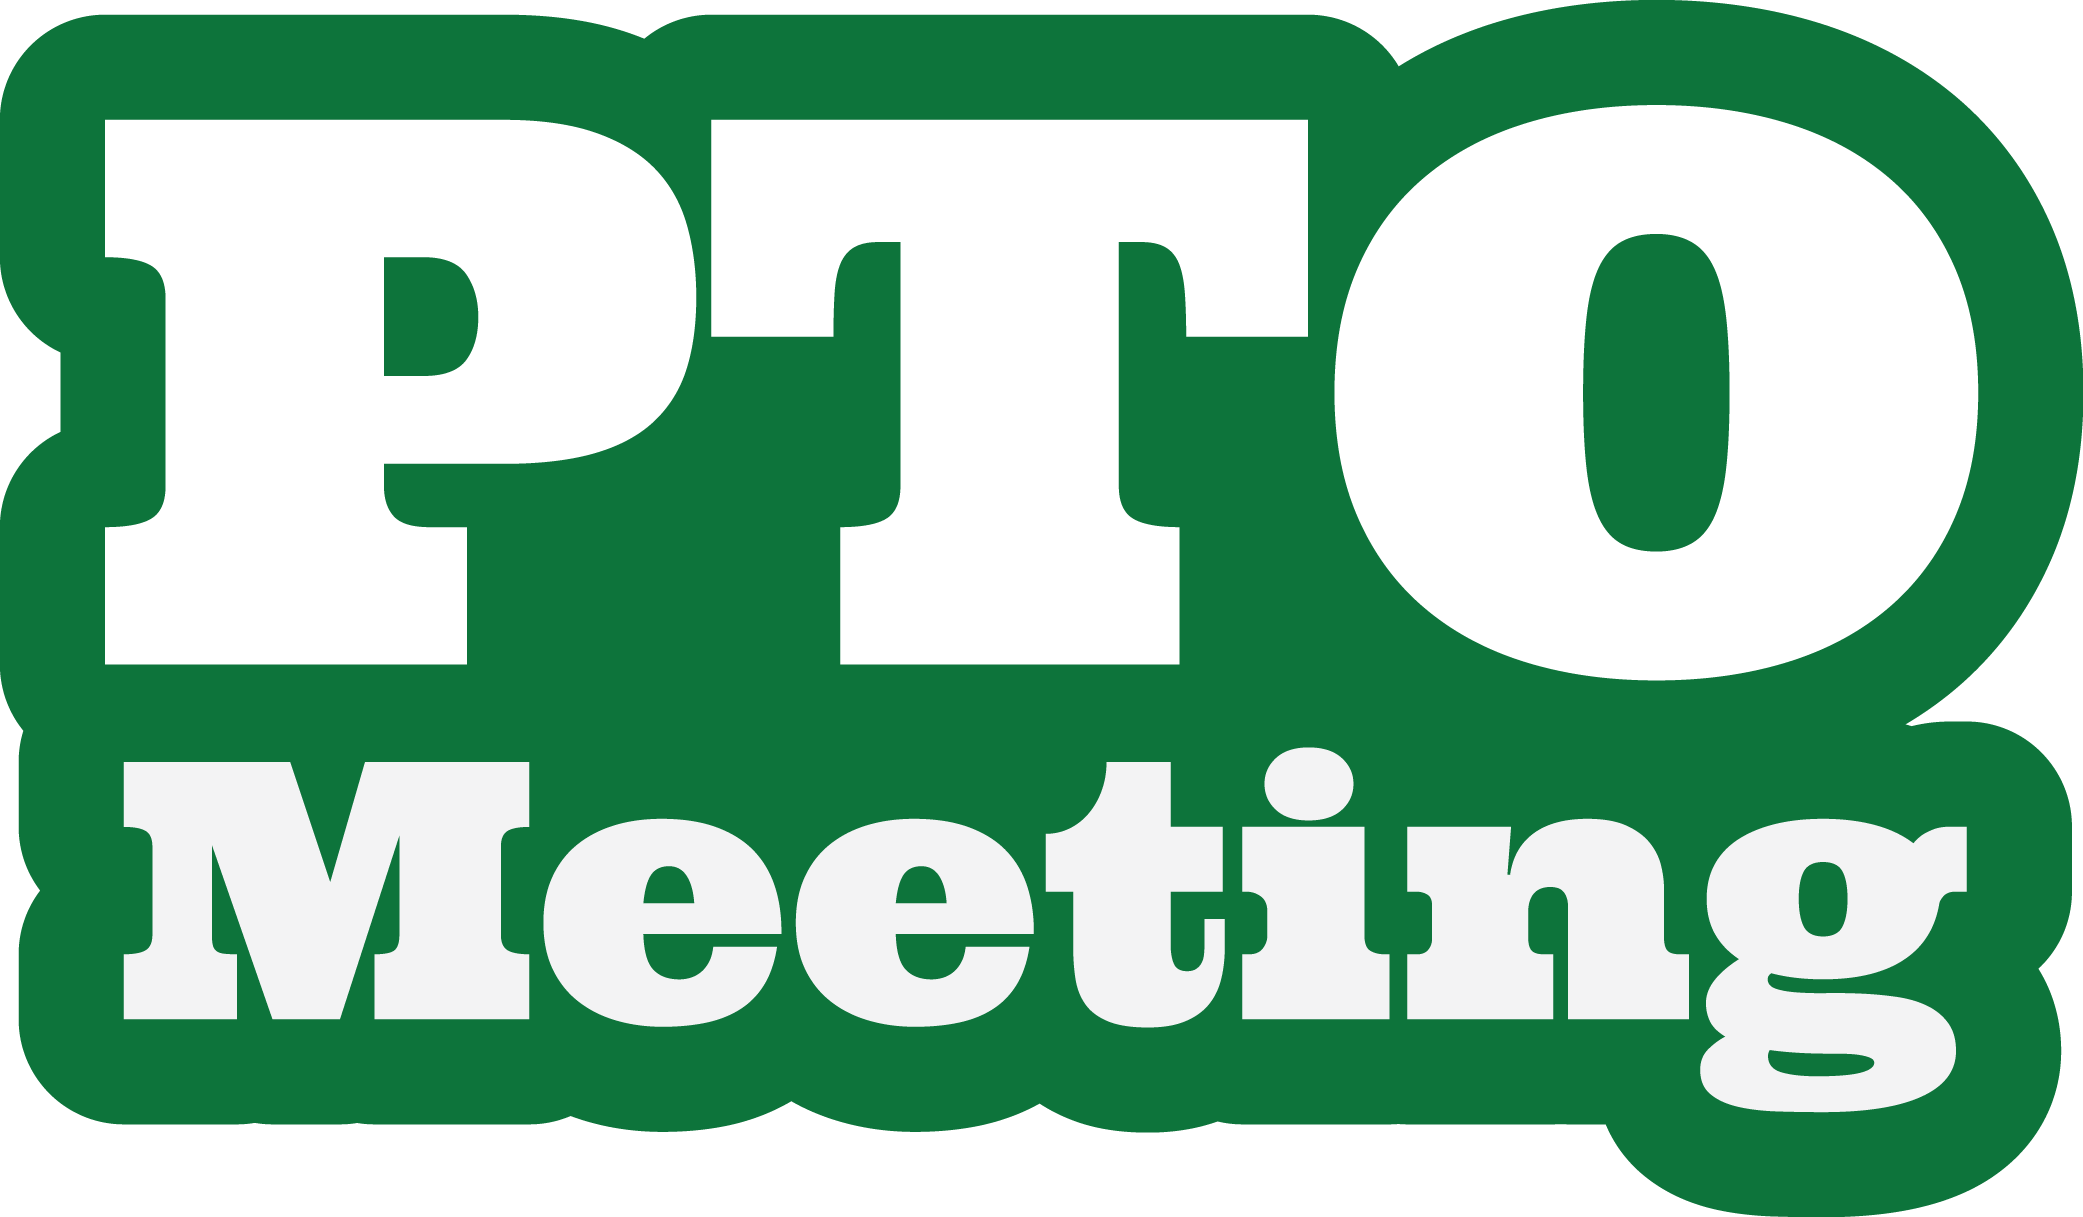 Reminder clipart board meeting. Pto